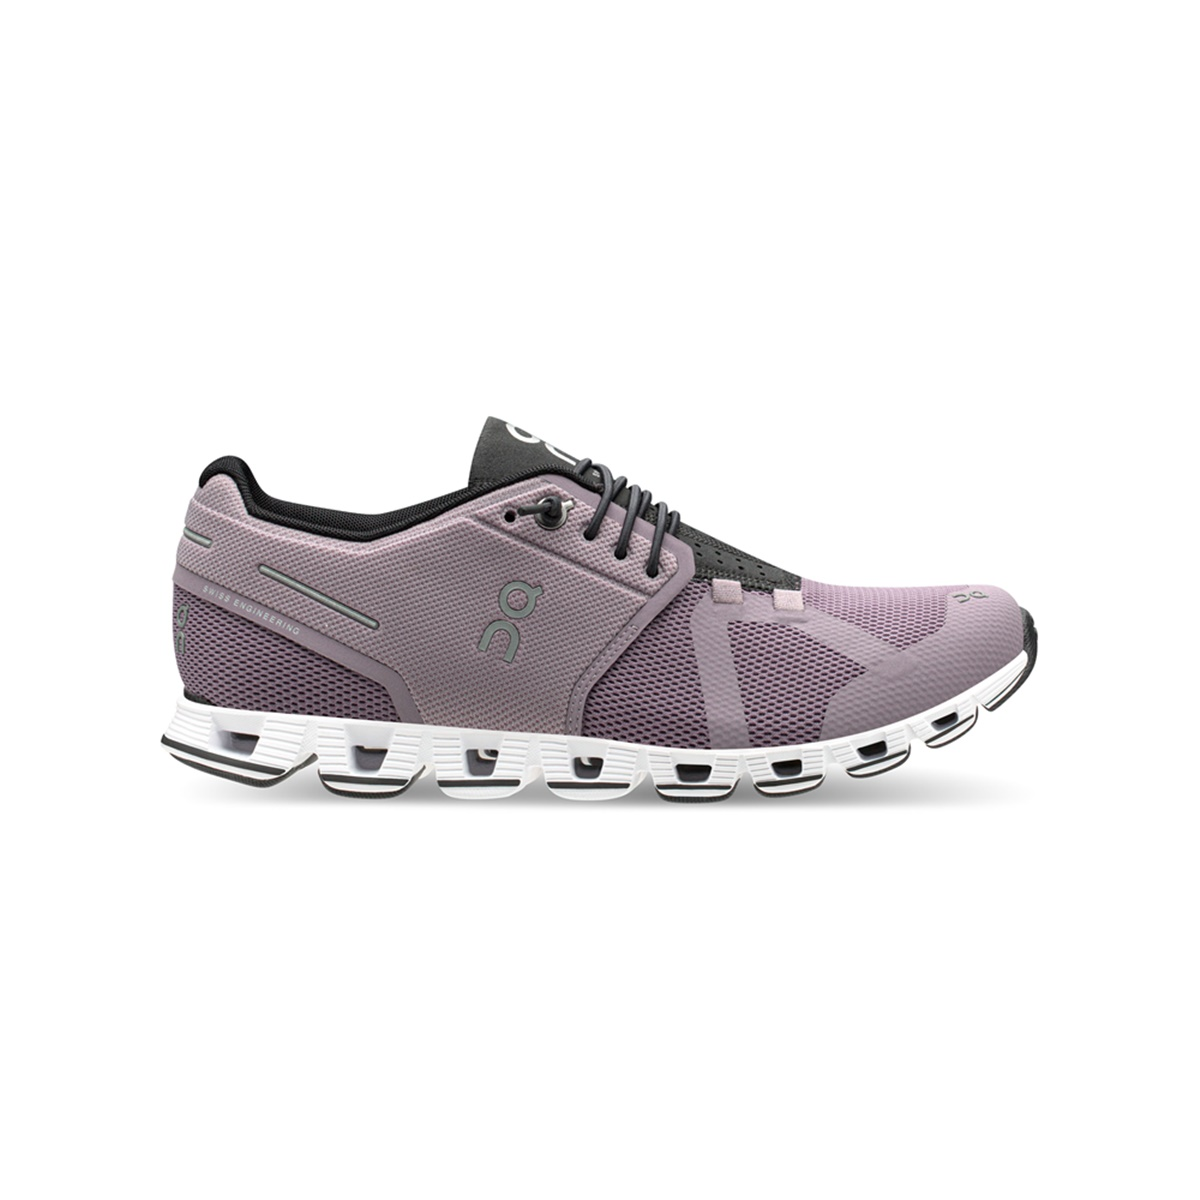 【WOMEN'S】On Cloud Lilac/Black